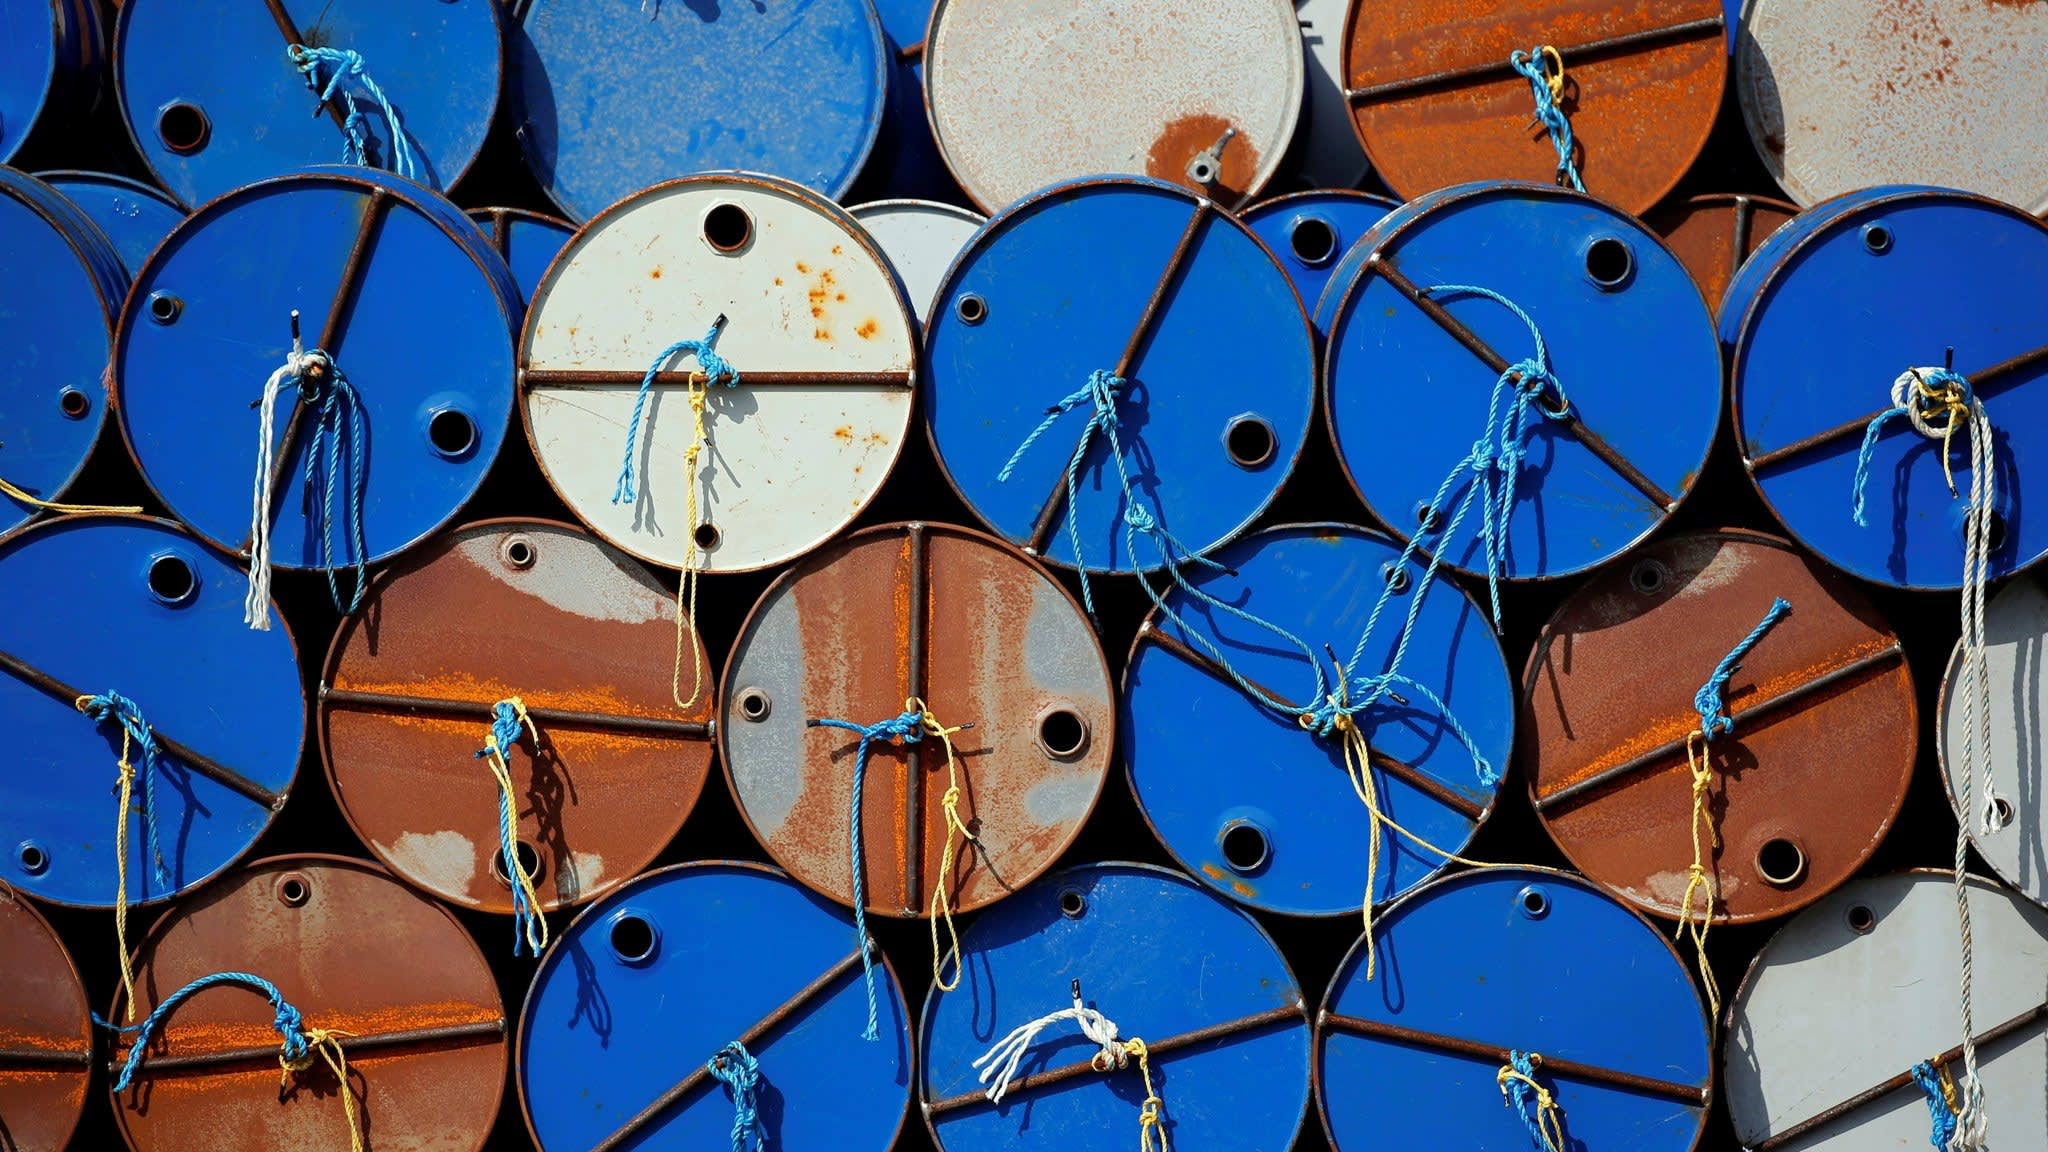 Baker Hughes to take 5% stake in Adnoc Drilling | Financial